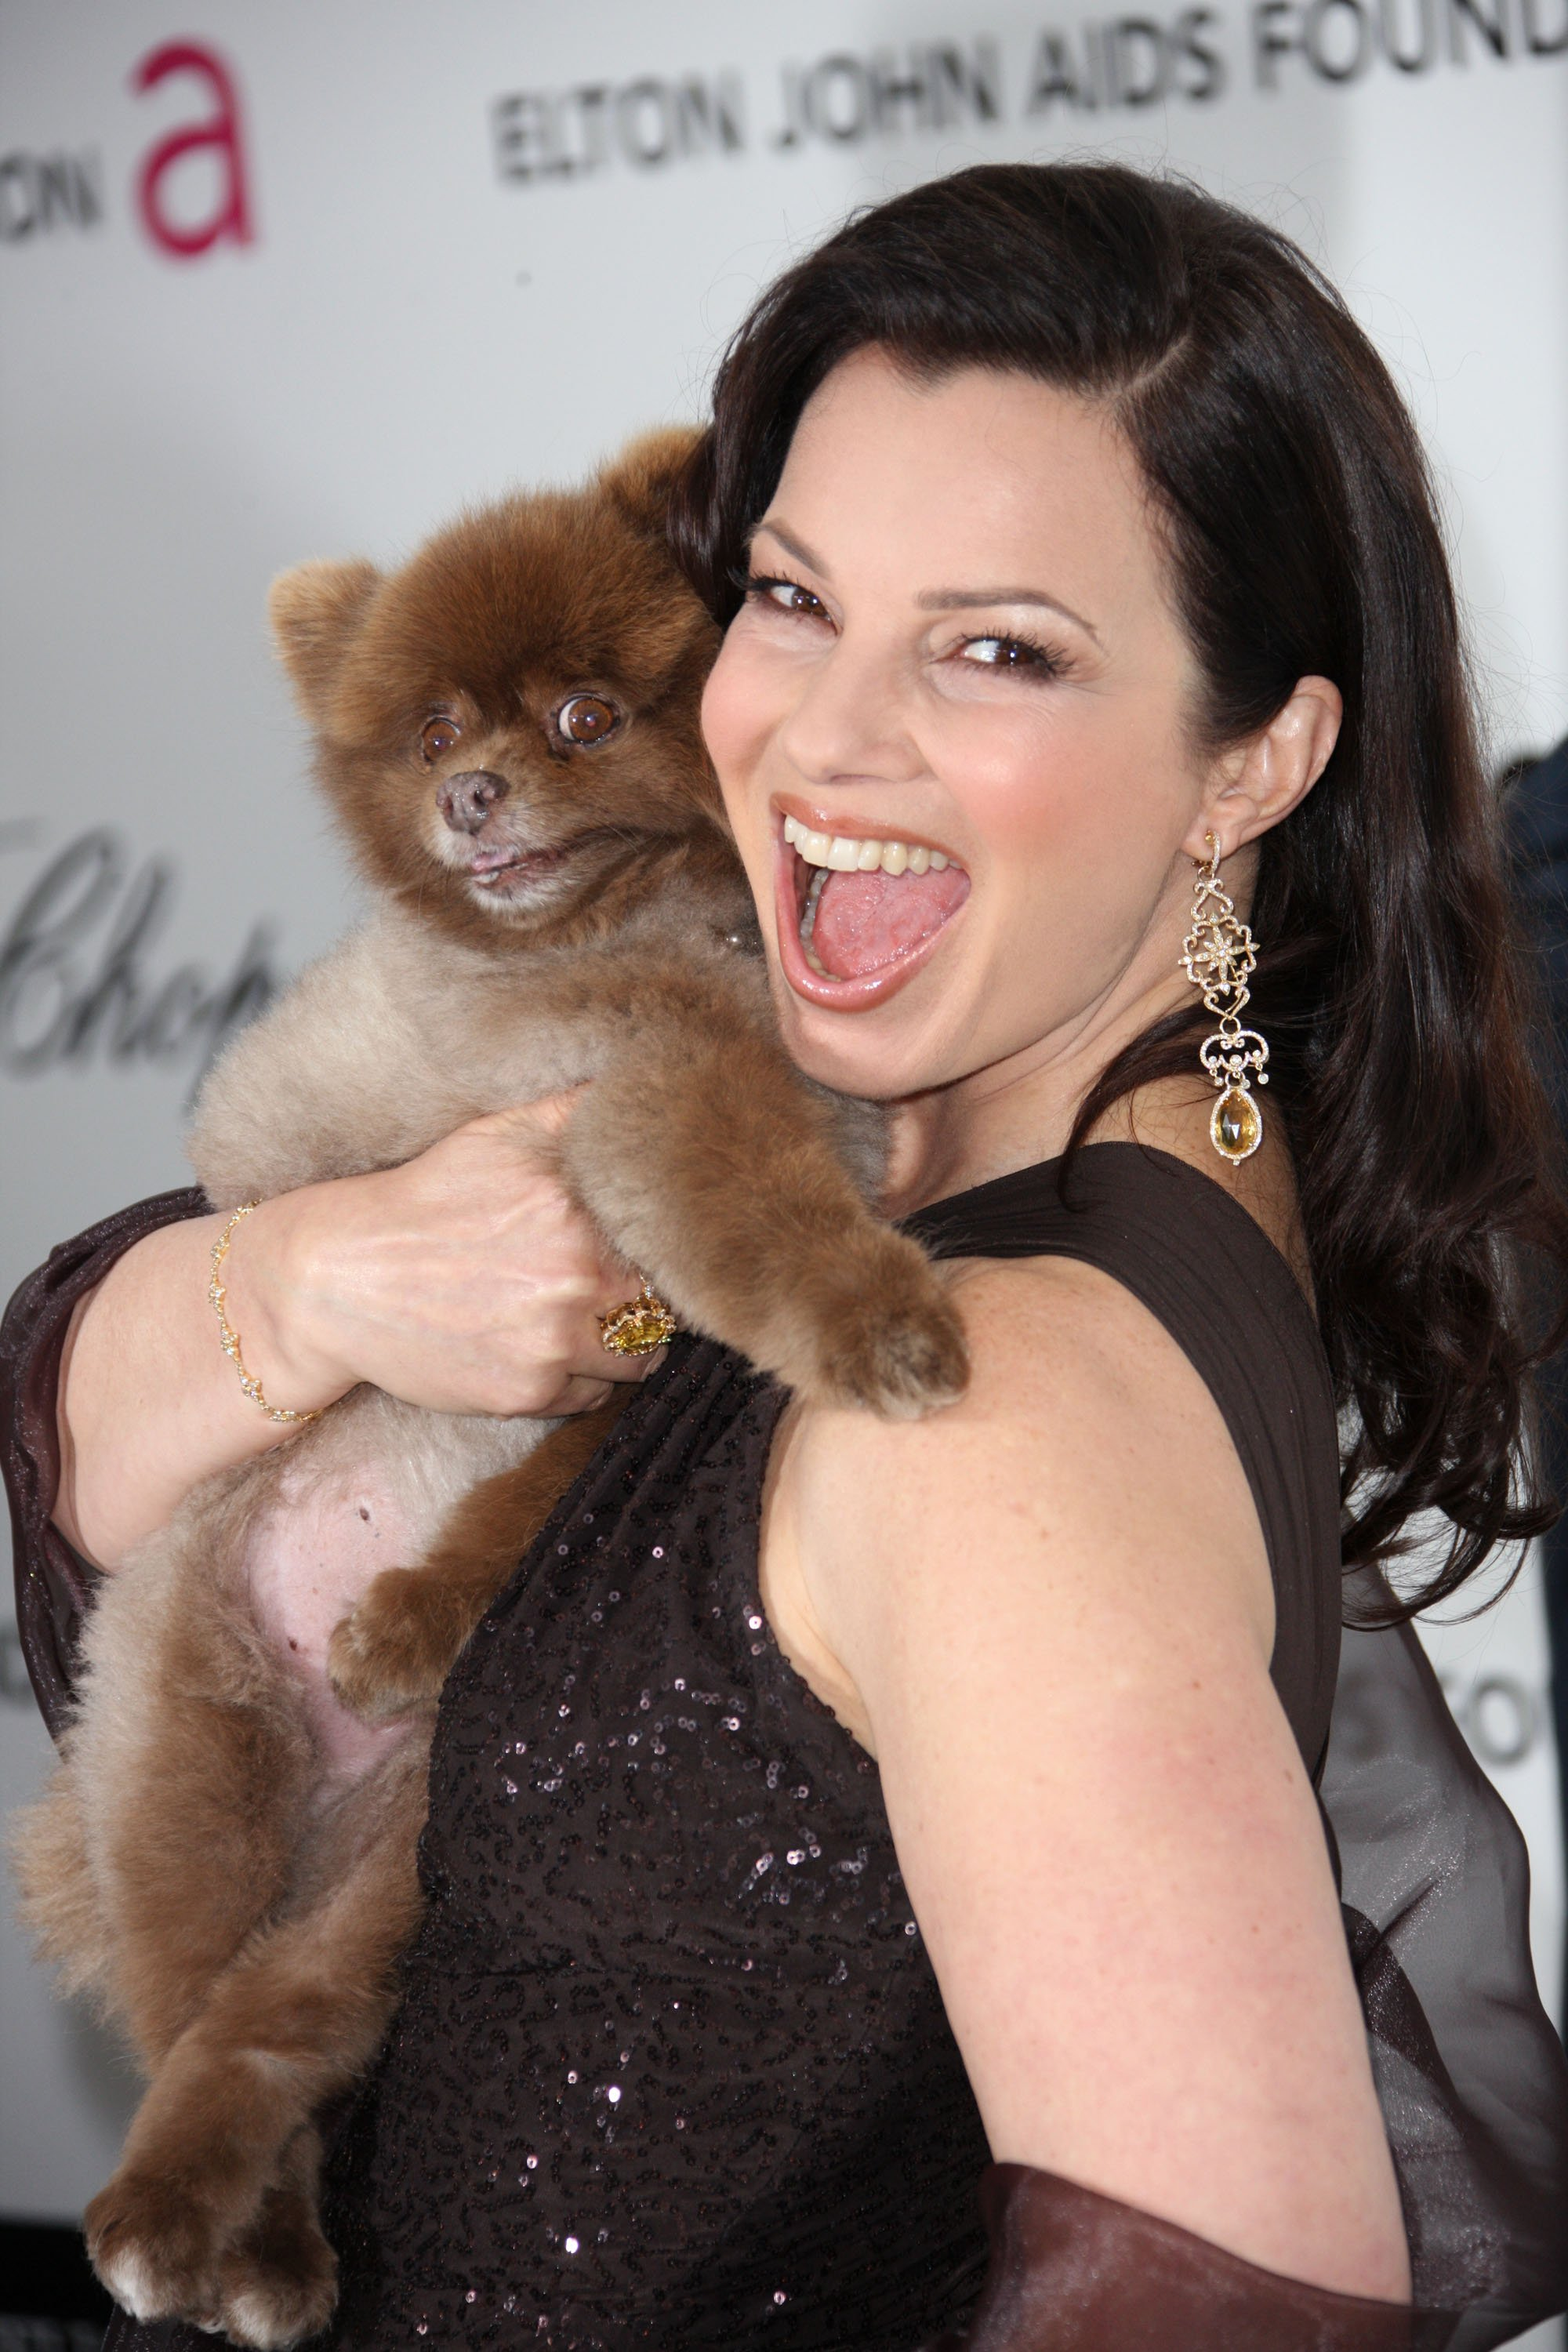 Fran Drescher at the 20th Annual Elton John AIDS Foundation's Oscar Viewing Party on February 26, 2012 | Photo: GettyImages